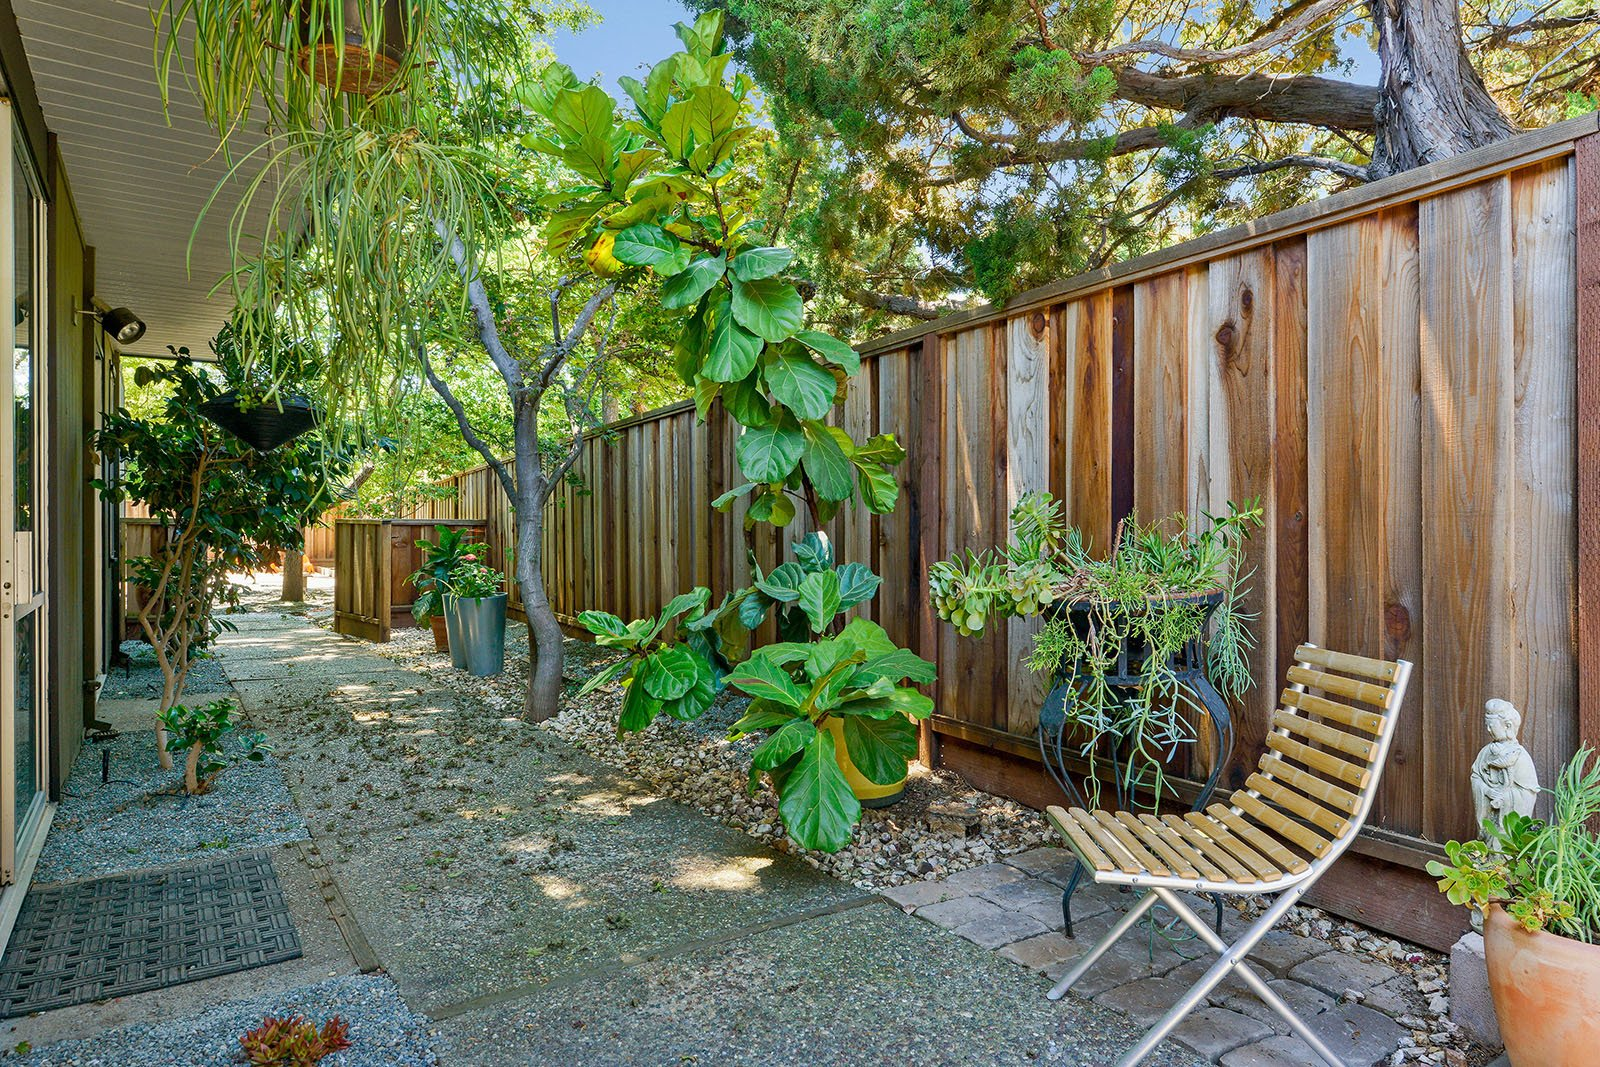 Photo 13 of 15 in An Enormous Bay Area Eichler Asks $1.45M